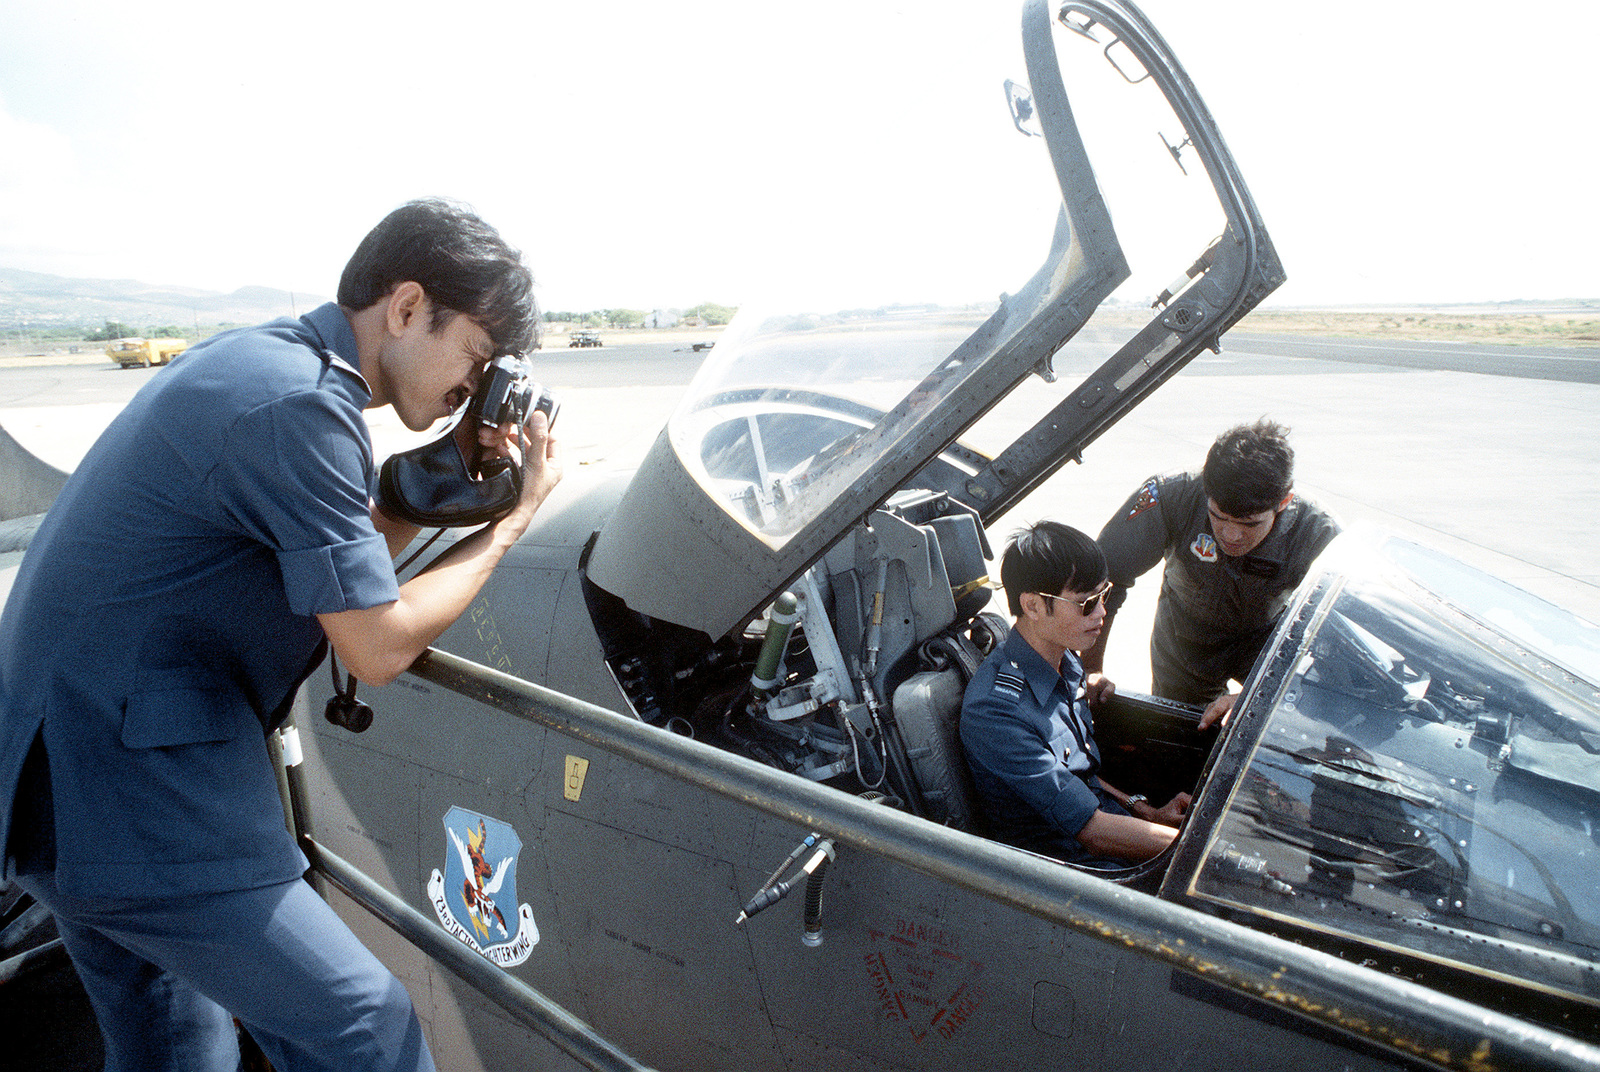 MAJ Lance Smith of the 23rd Tactical Fighter Wing Flying Tigers explains to Flight LT. Goh Chyelee of the Royal Singapore Air Force, cockpit features of an A-7D Corsair II aircraft during their participation in a joint exercise. Flight LT. Tom Wong of the Royal Singapore Air Force takes a photograph of the demonstration